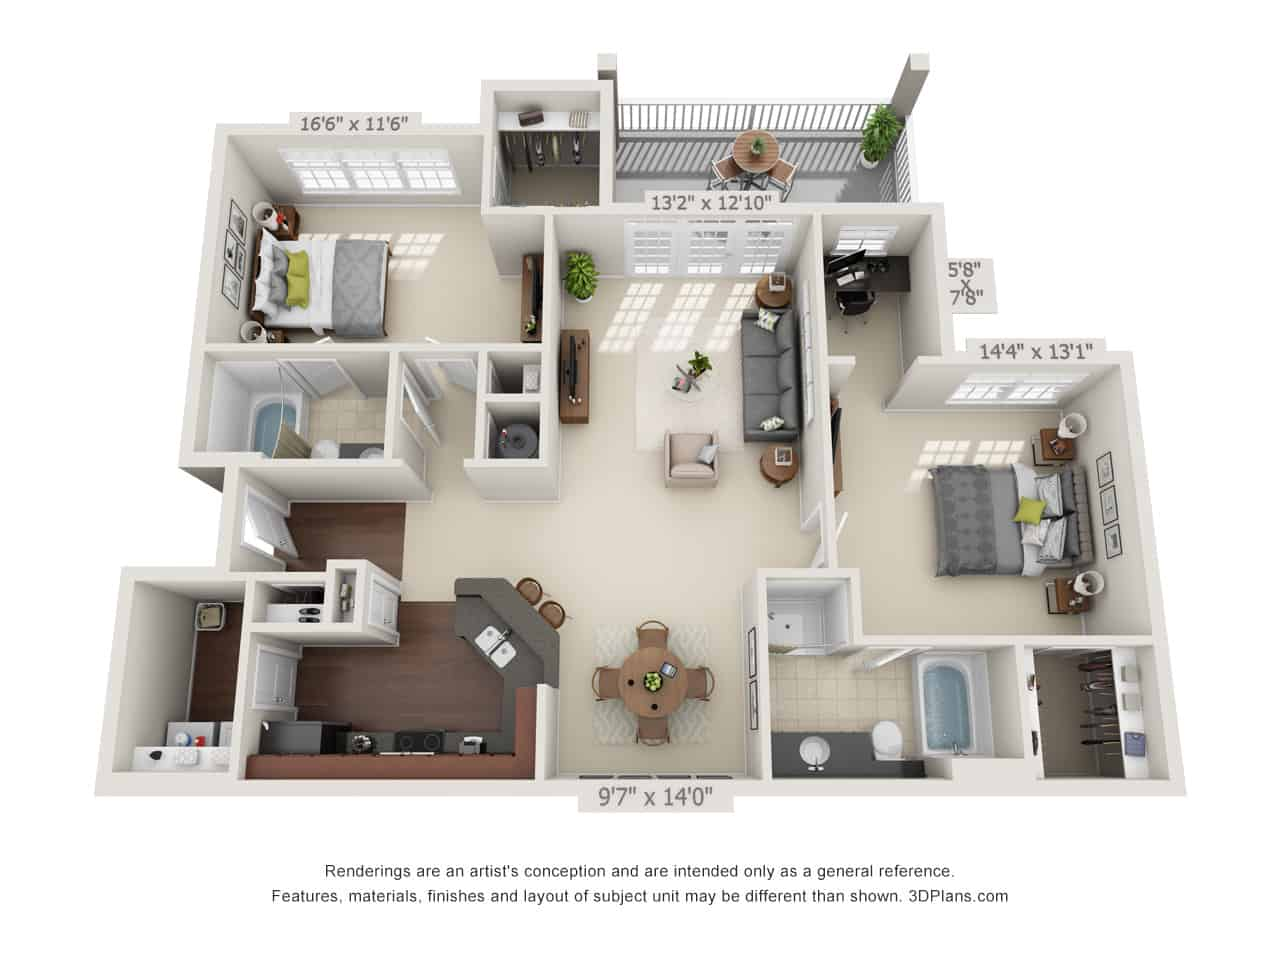 Two Bedroom (B) Approx. 1,311 sq. ft. with 152 sq. ft. Deck Rent From $1,375 Beds 2 Baths 2